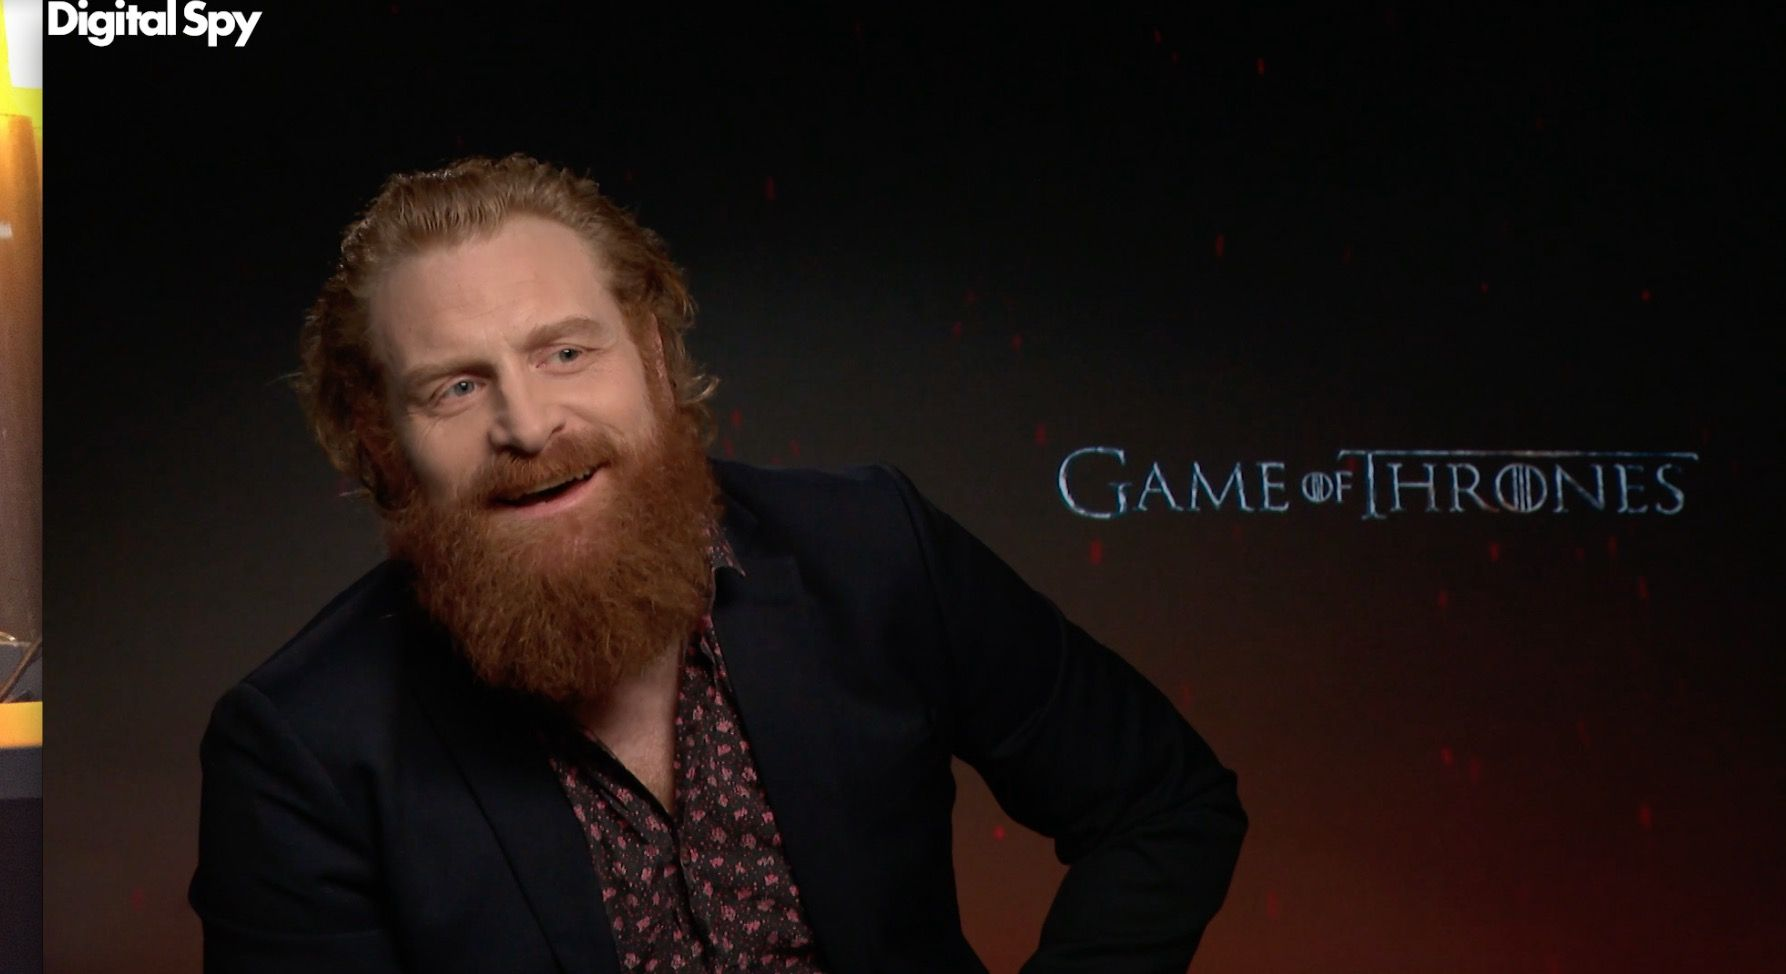 Exclusive: Game of Thrones star says more Tormund and Brienne moments were cut from the show